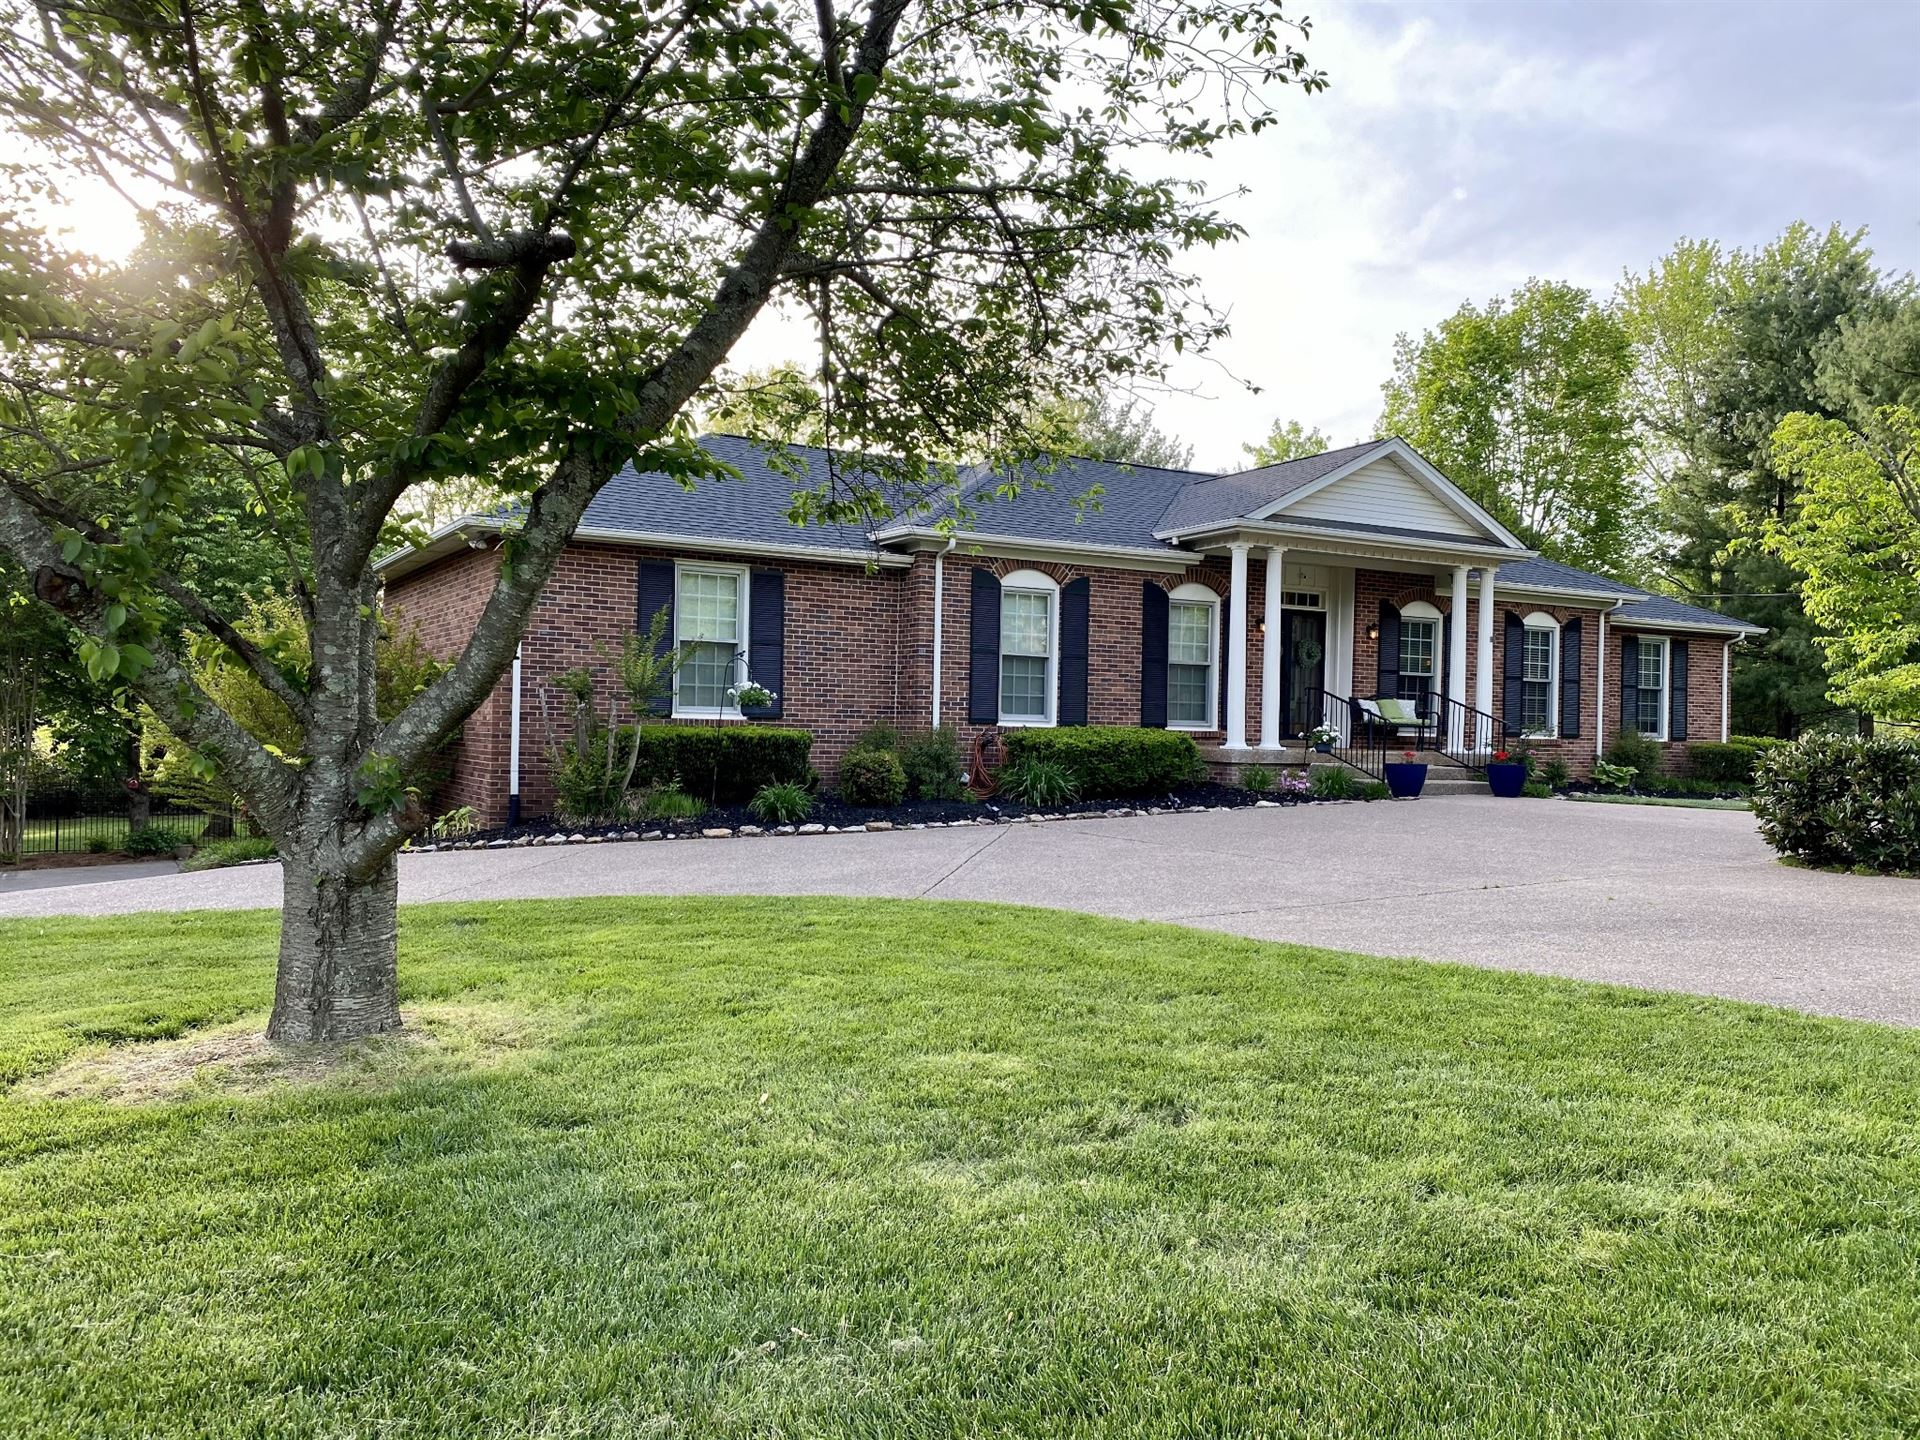 915 Steeplechase Dr, Brentwood, TN 37027 - MLS#: 2248415